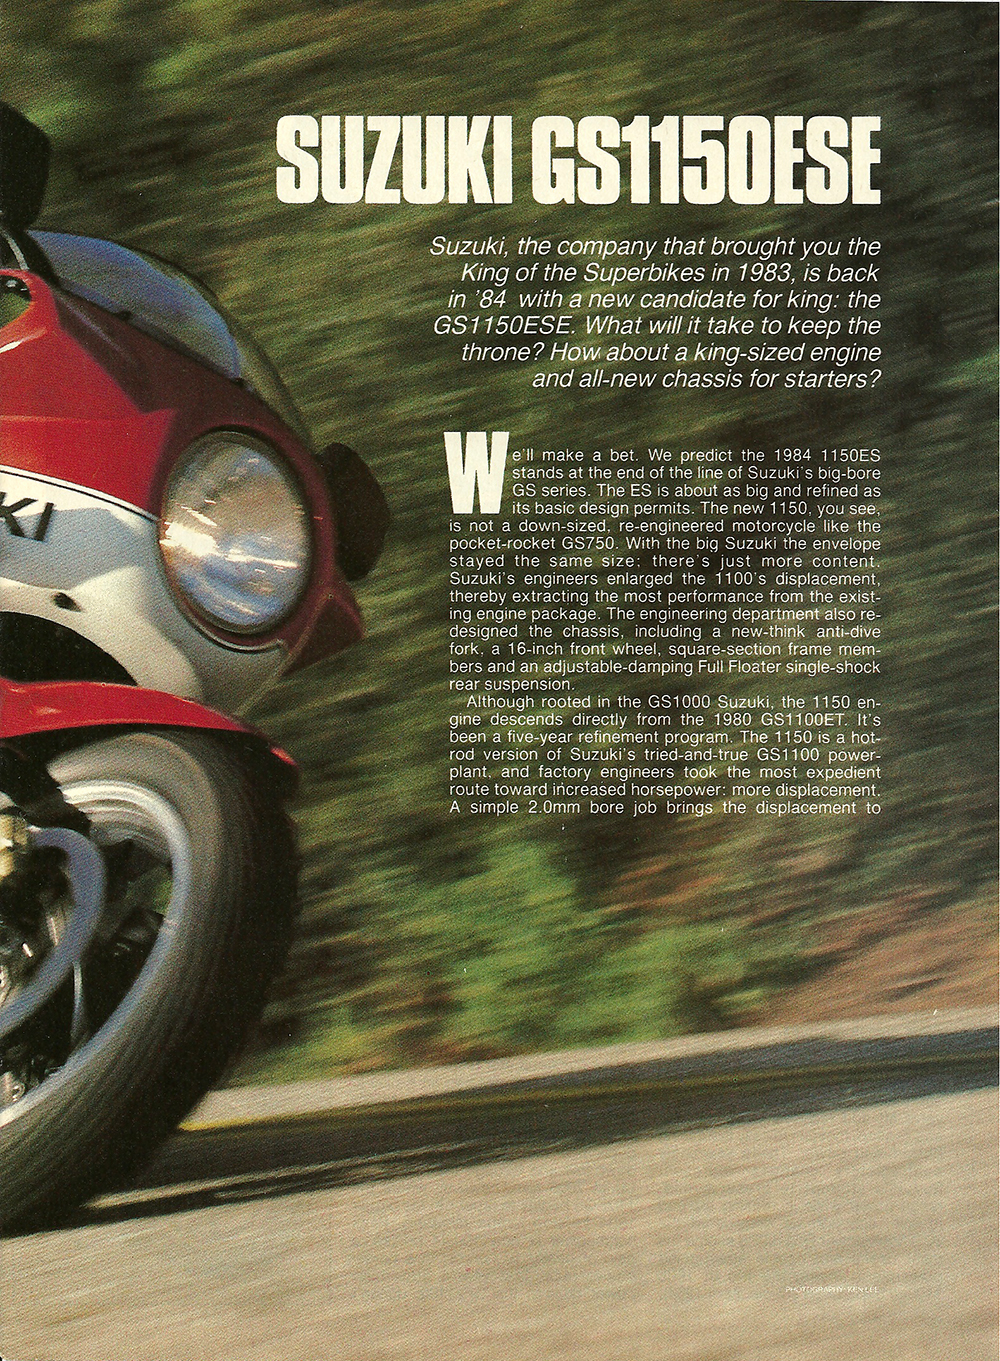 1984 Suzuki GS1150ESE road test 2.jpg